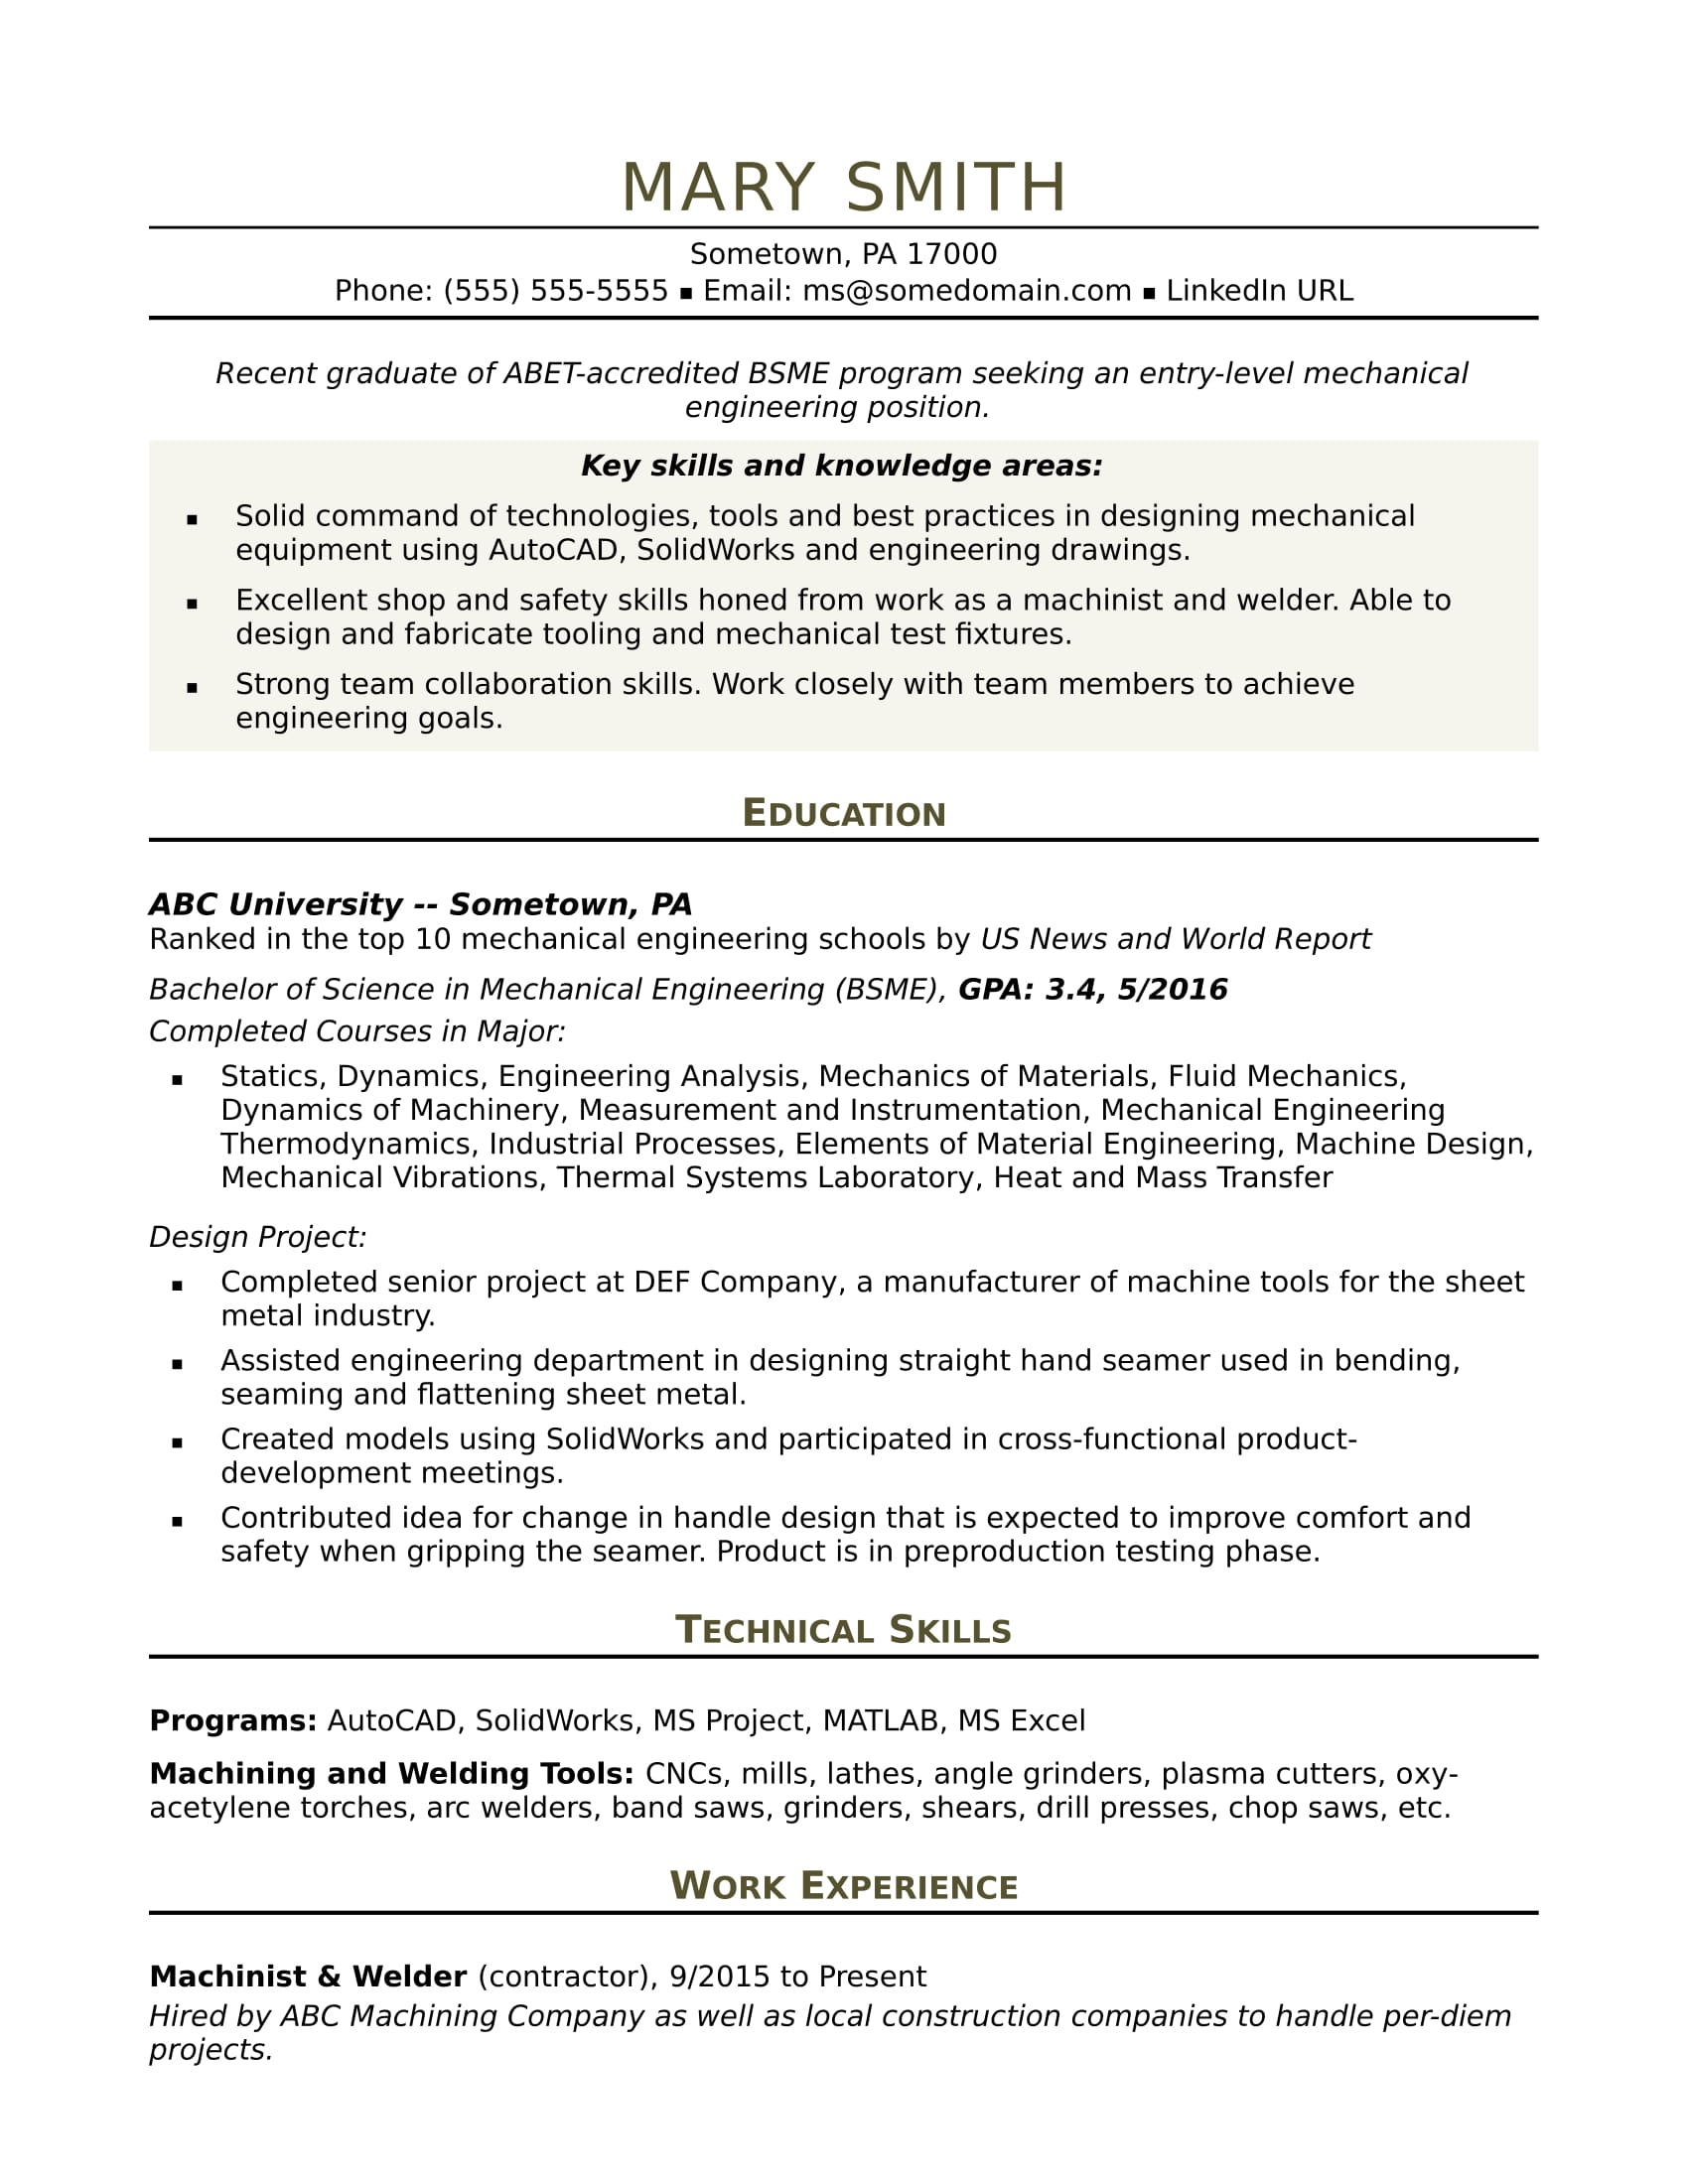 sample resume for an entry level mechanical engineer monster example of best fresh Resume Example Of Best Resume For Fresh Graduate